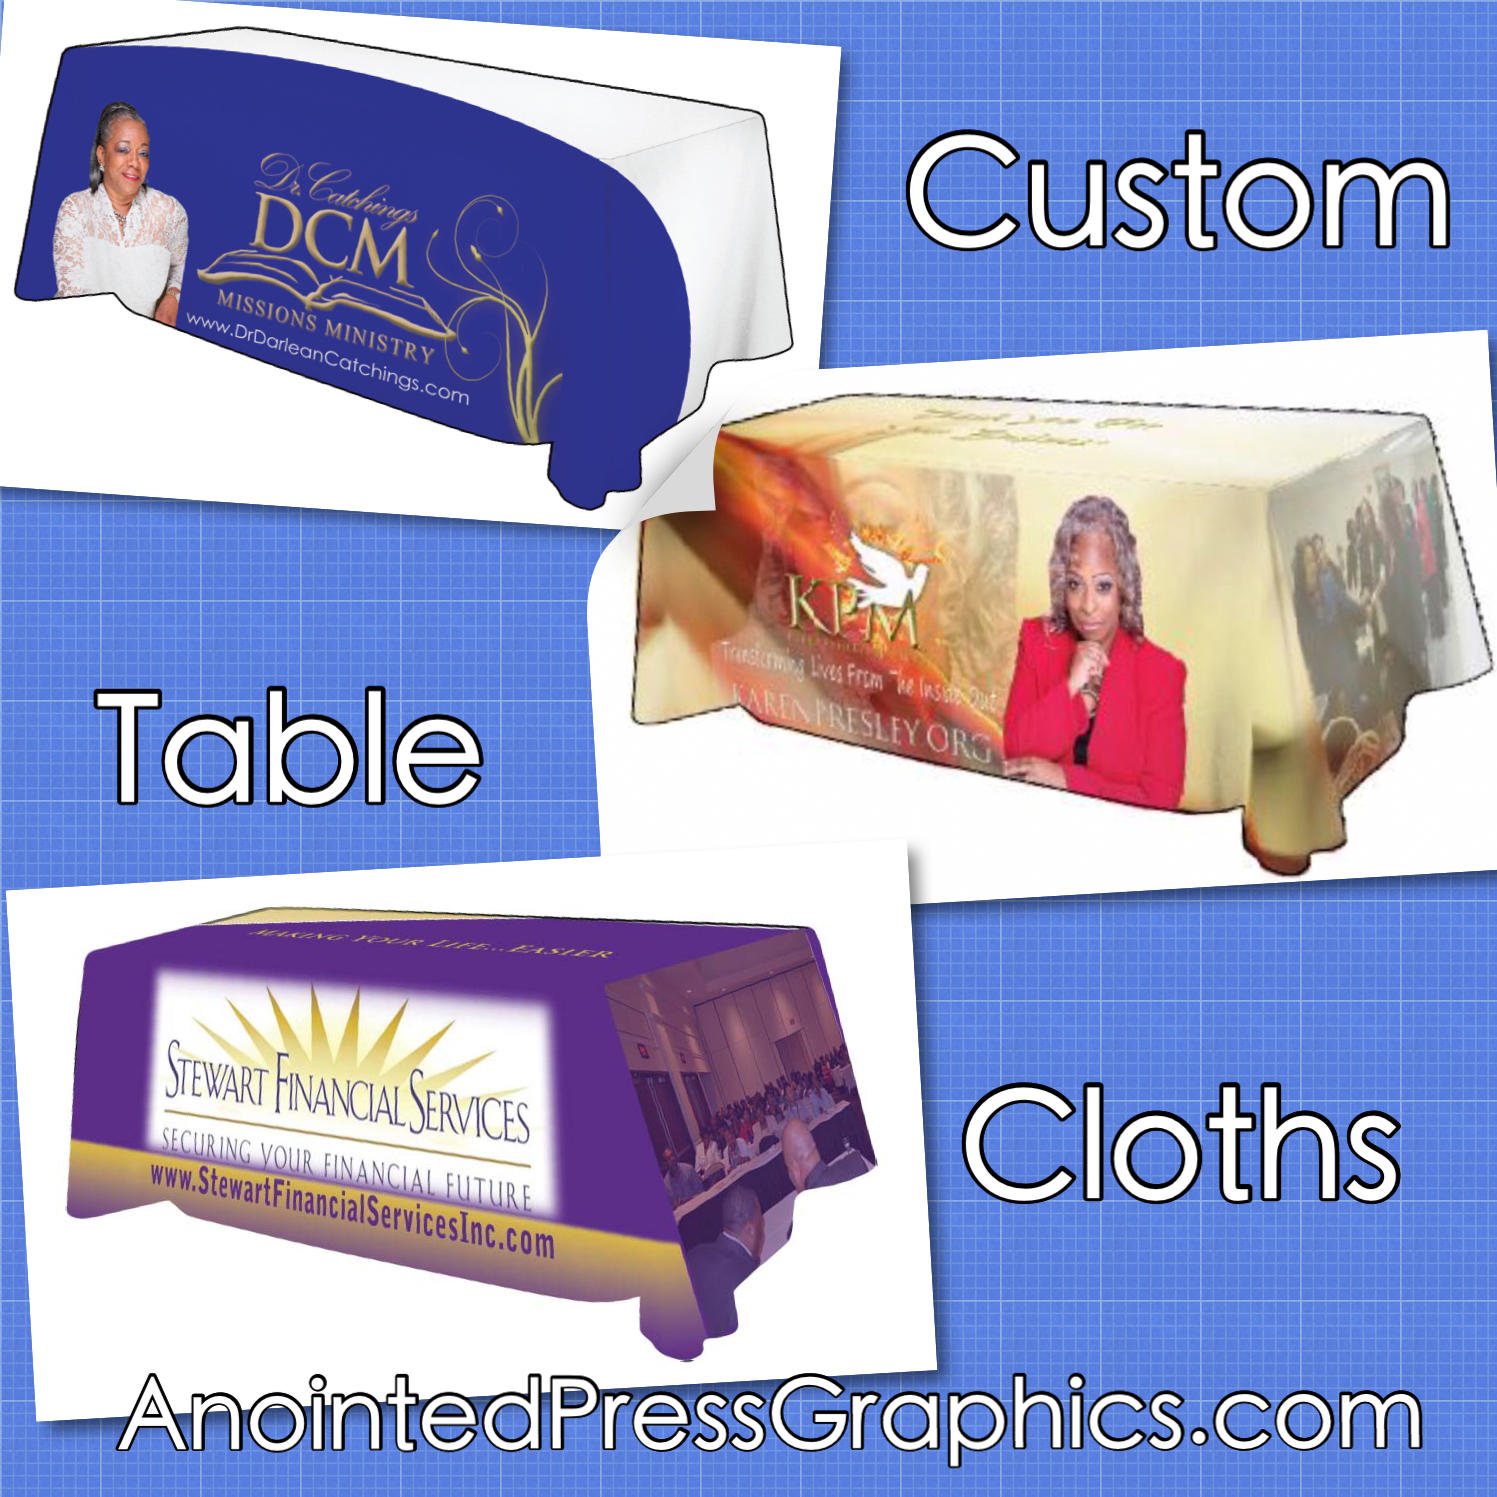 Anointed Press Graphics, Inc image 6